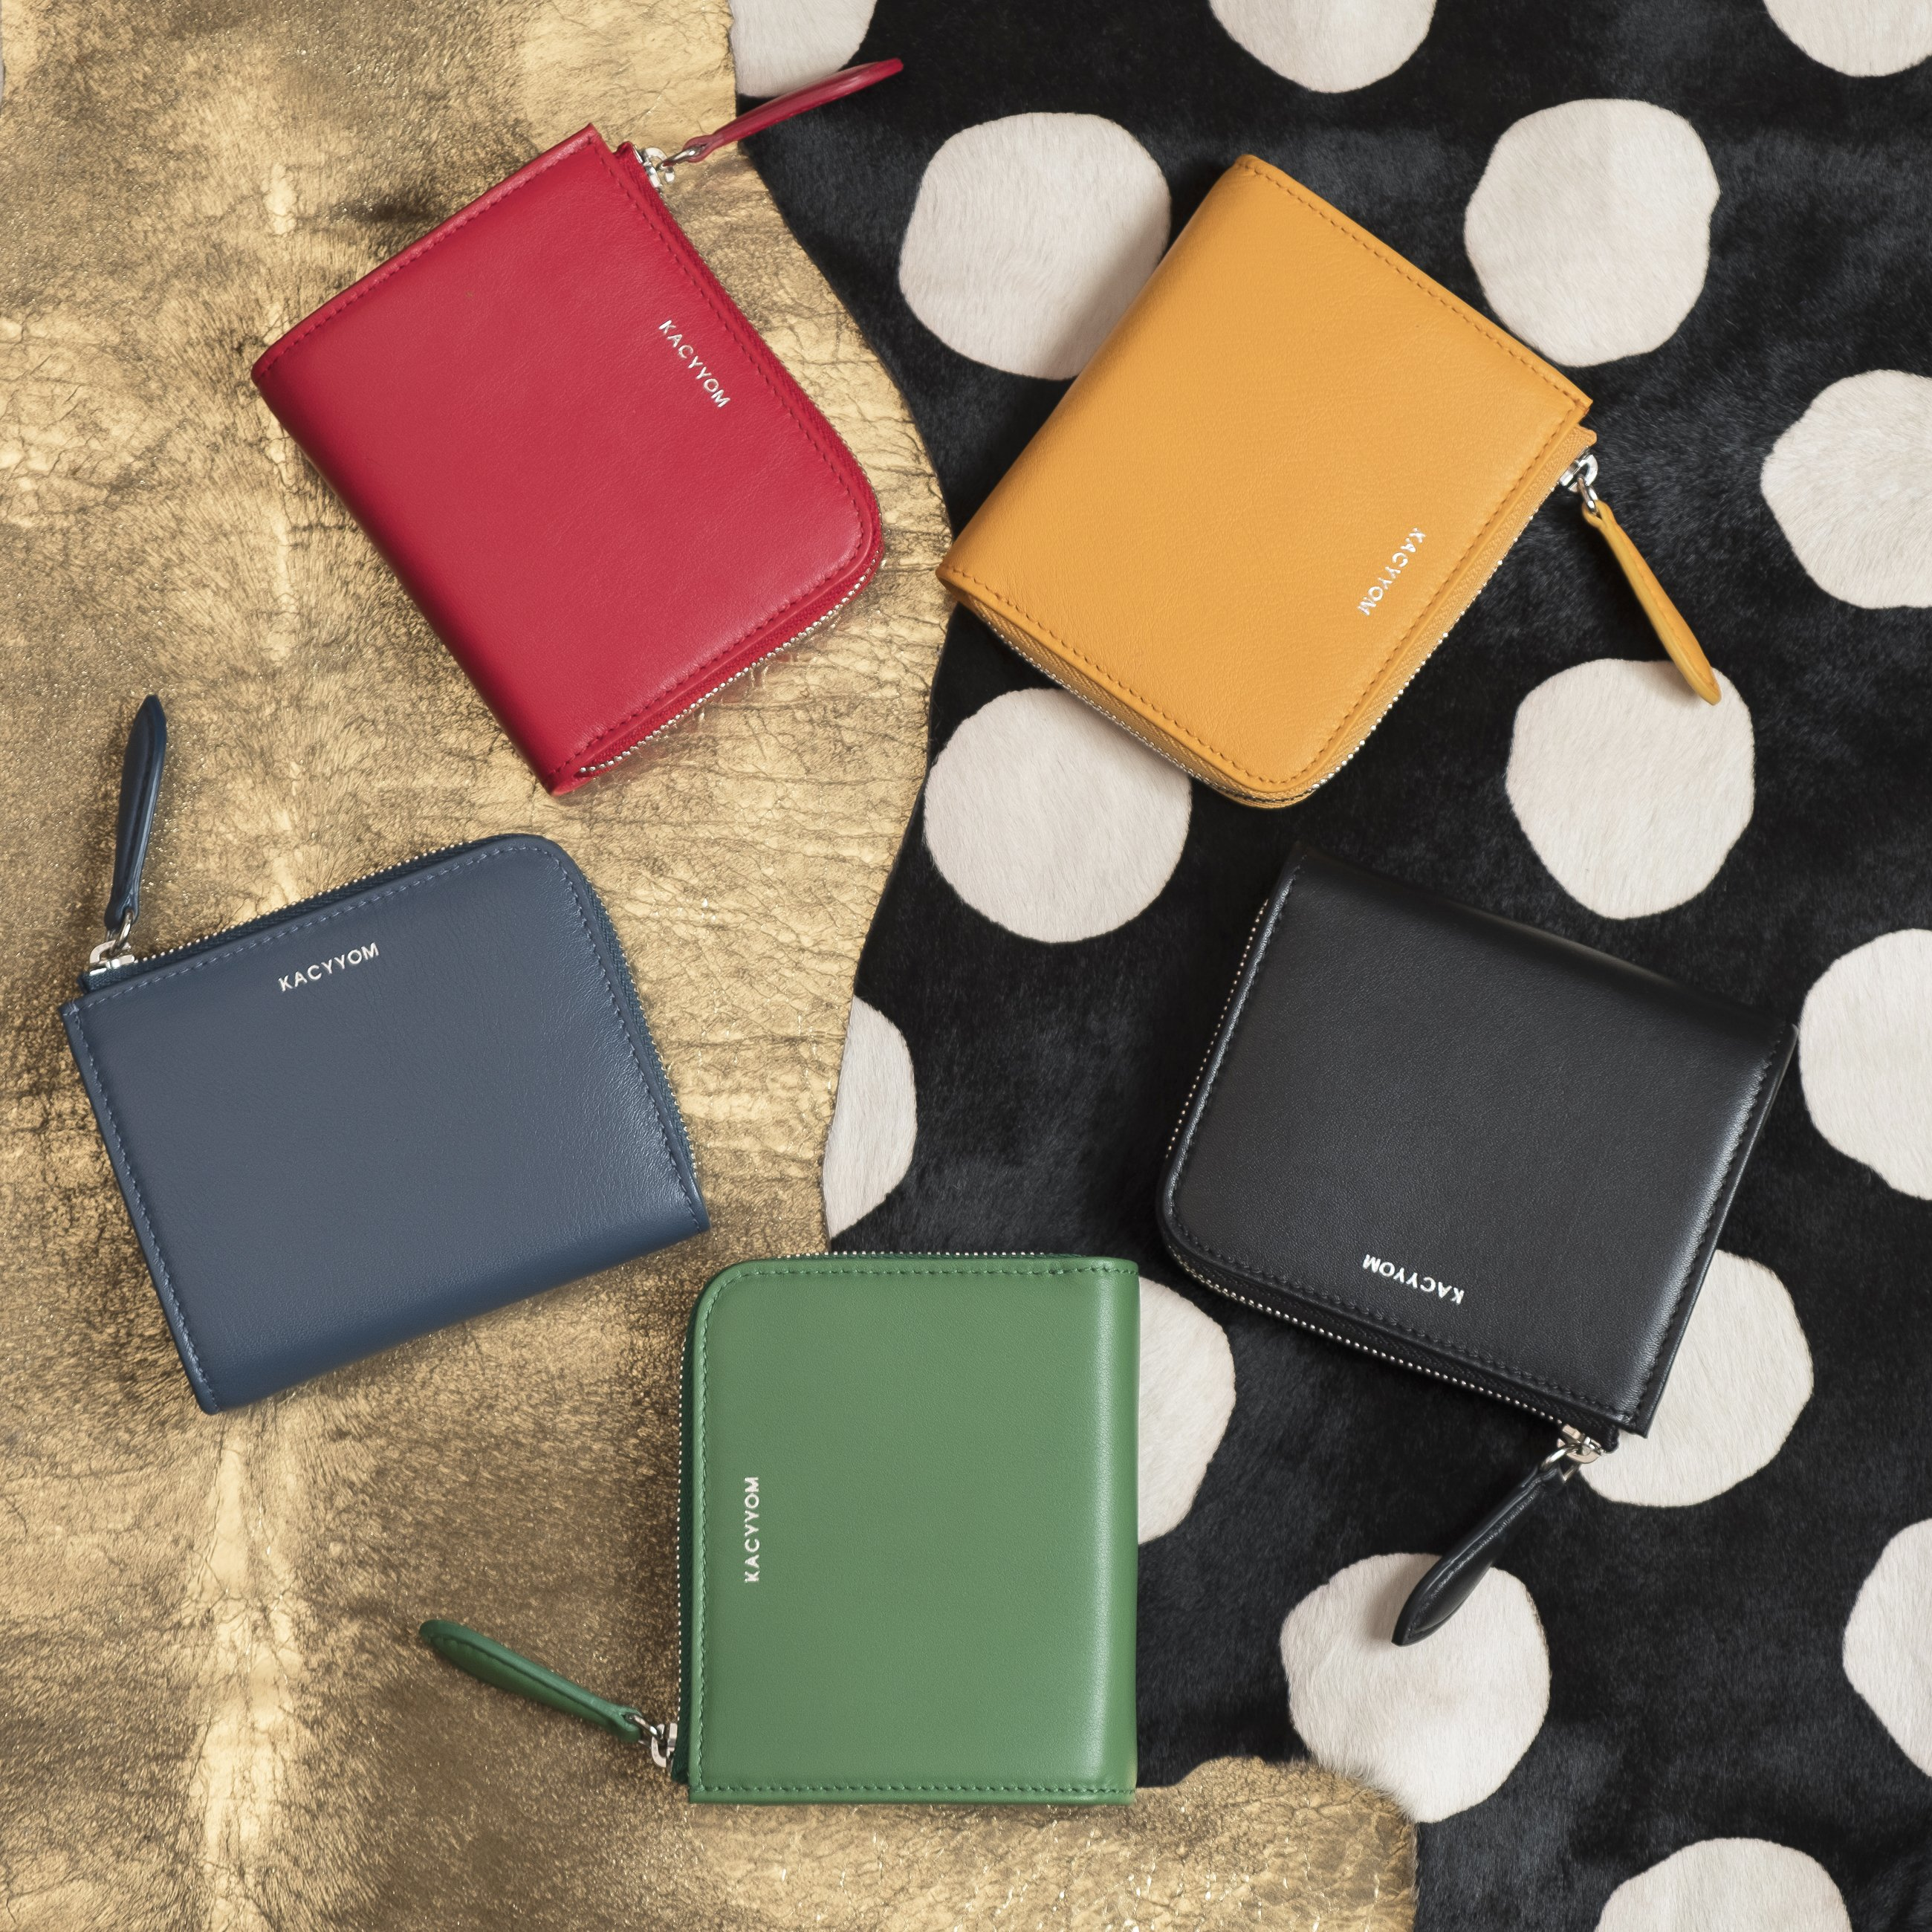 This $200 mini wallet from KacyYom comes in a handful of colors and is hand crafted with Italian classic leather.{&nbsp;} Perfect for the classy mom! Plus its a local brand.{&nbsp;} We love shopping local!{&nbsp;}<p></p>